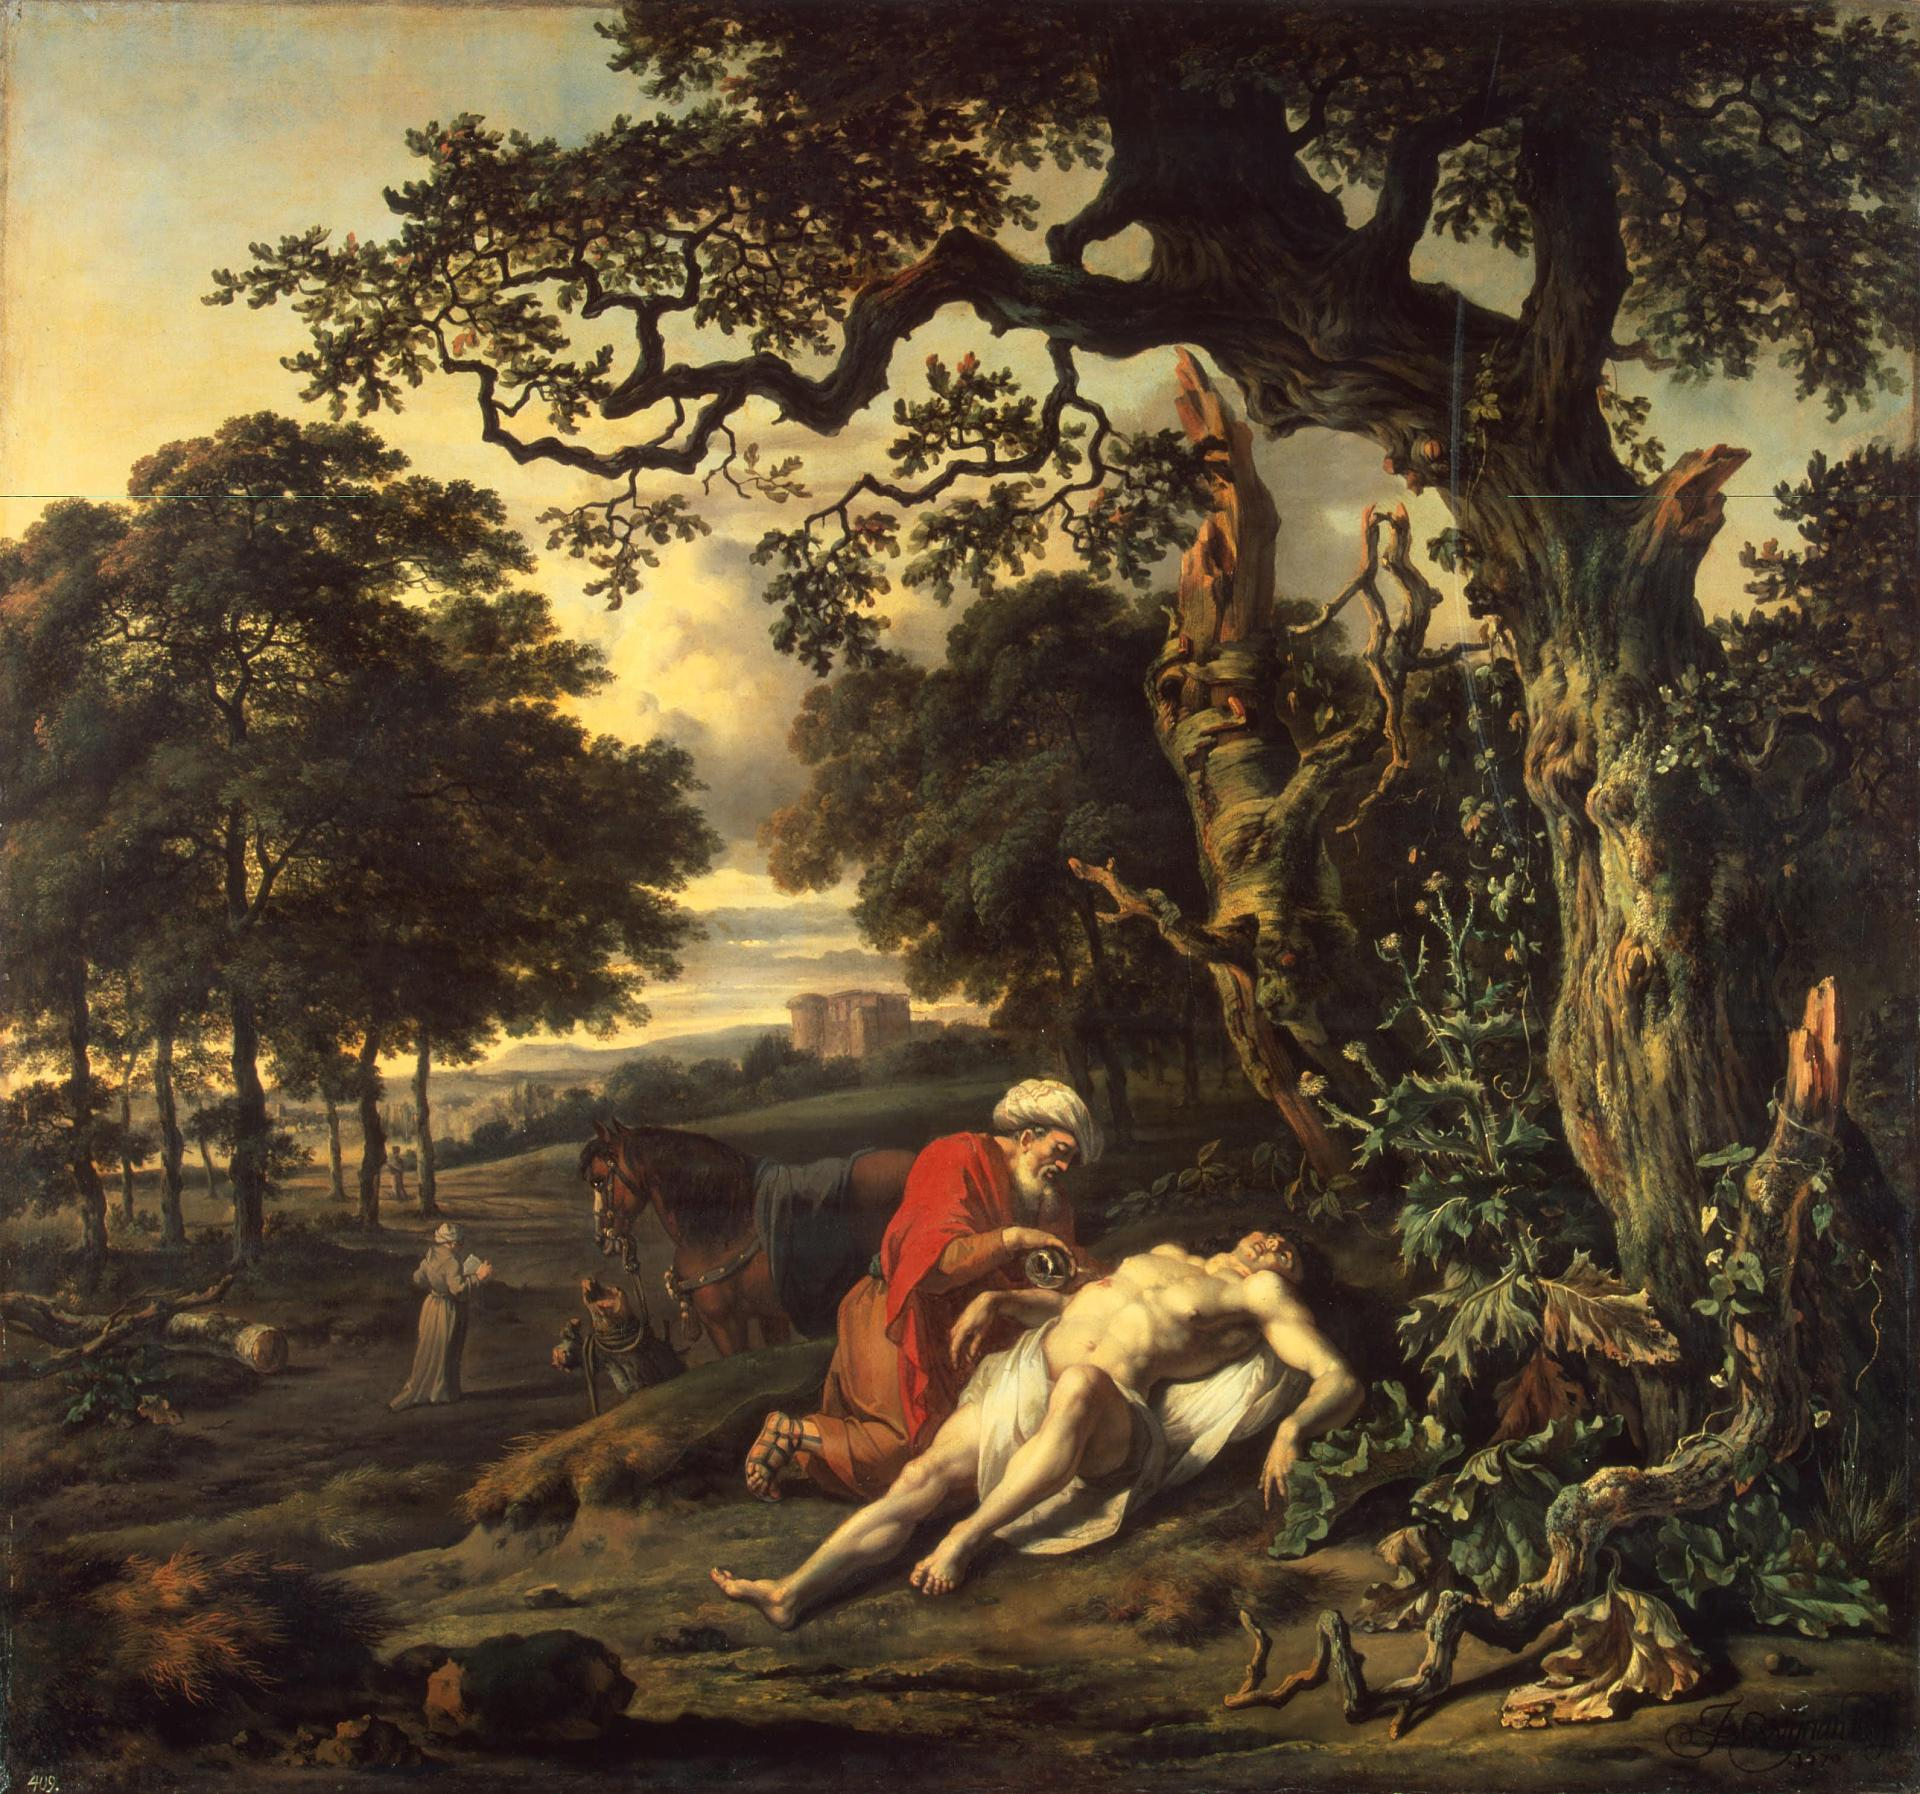 File:Jan Wijnants - Parable of the Good Samaritan.jpg